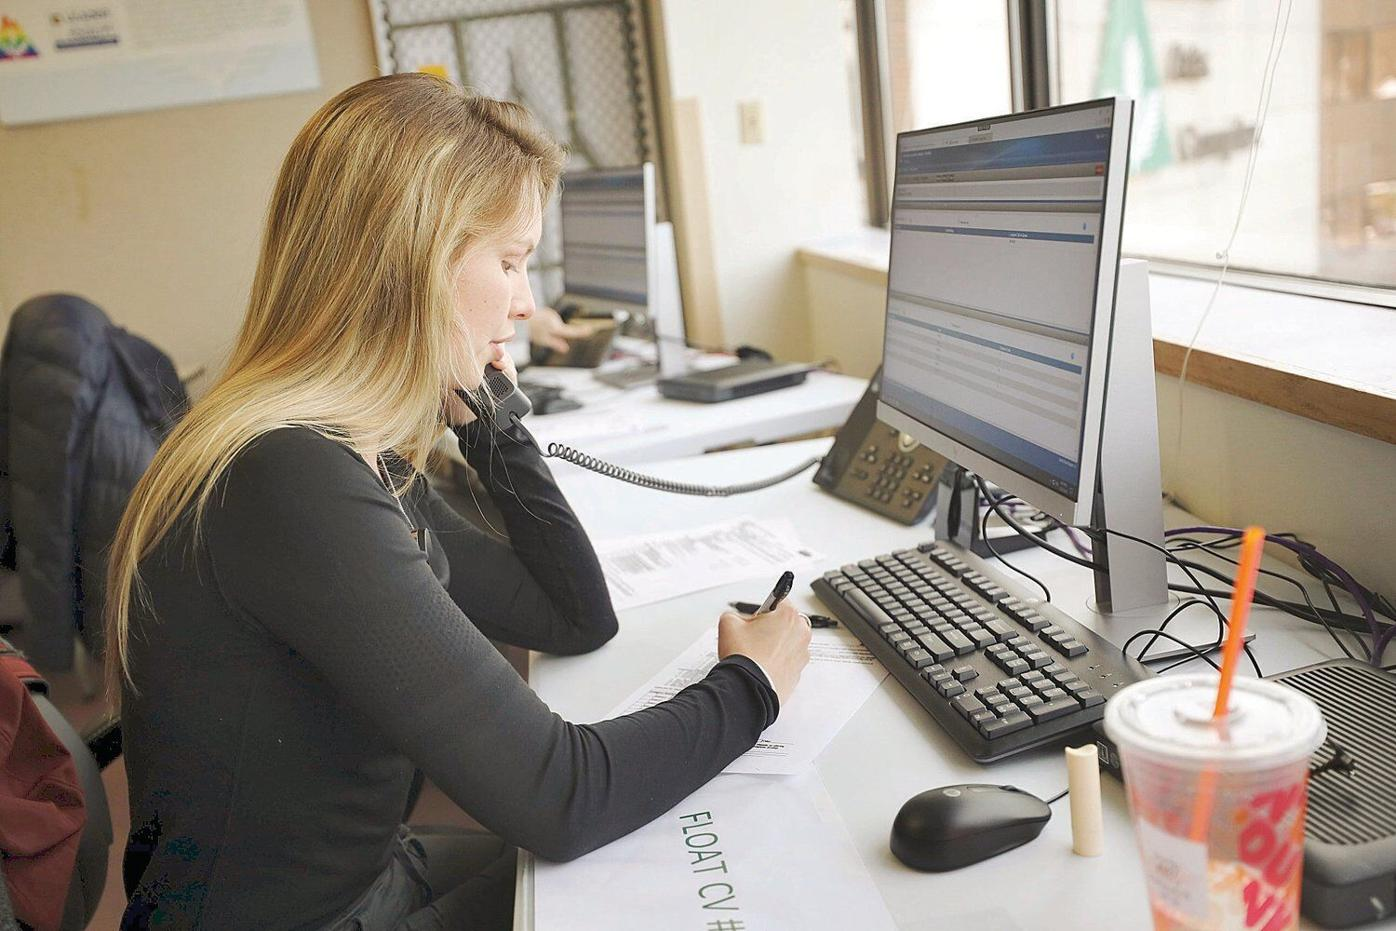 Berkshire Medical Center uses call center to help tackle the coronavirus